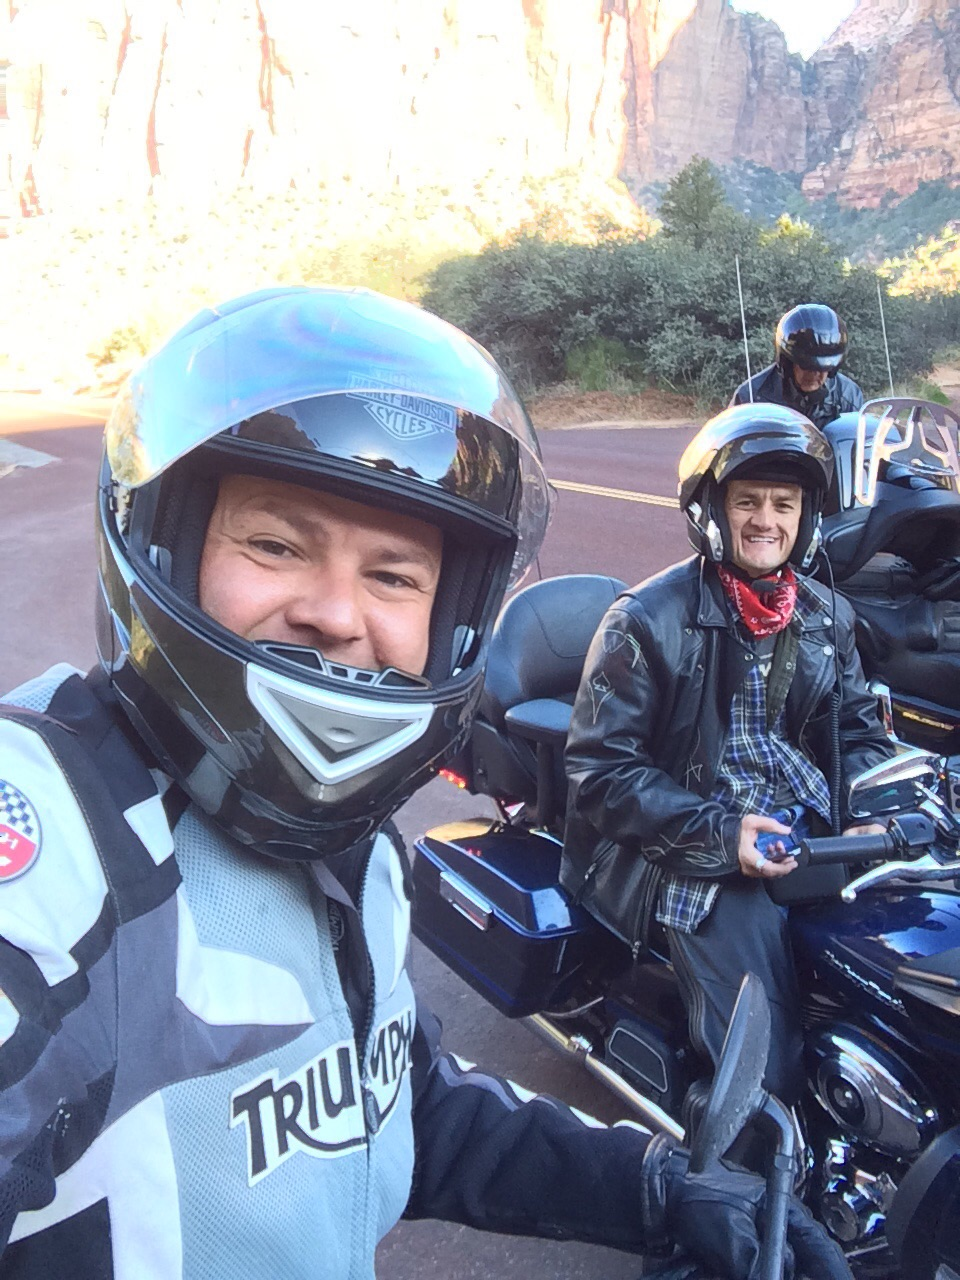 Gary Fales motorcycle trip to Bryce Canyon